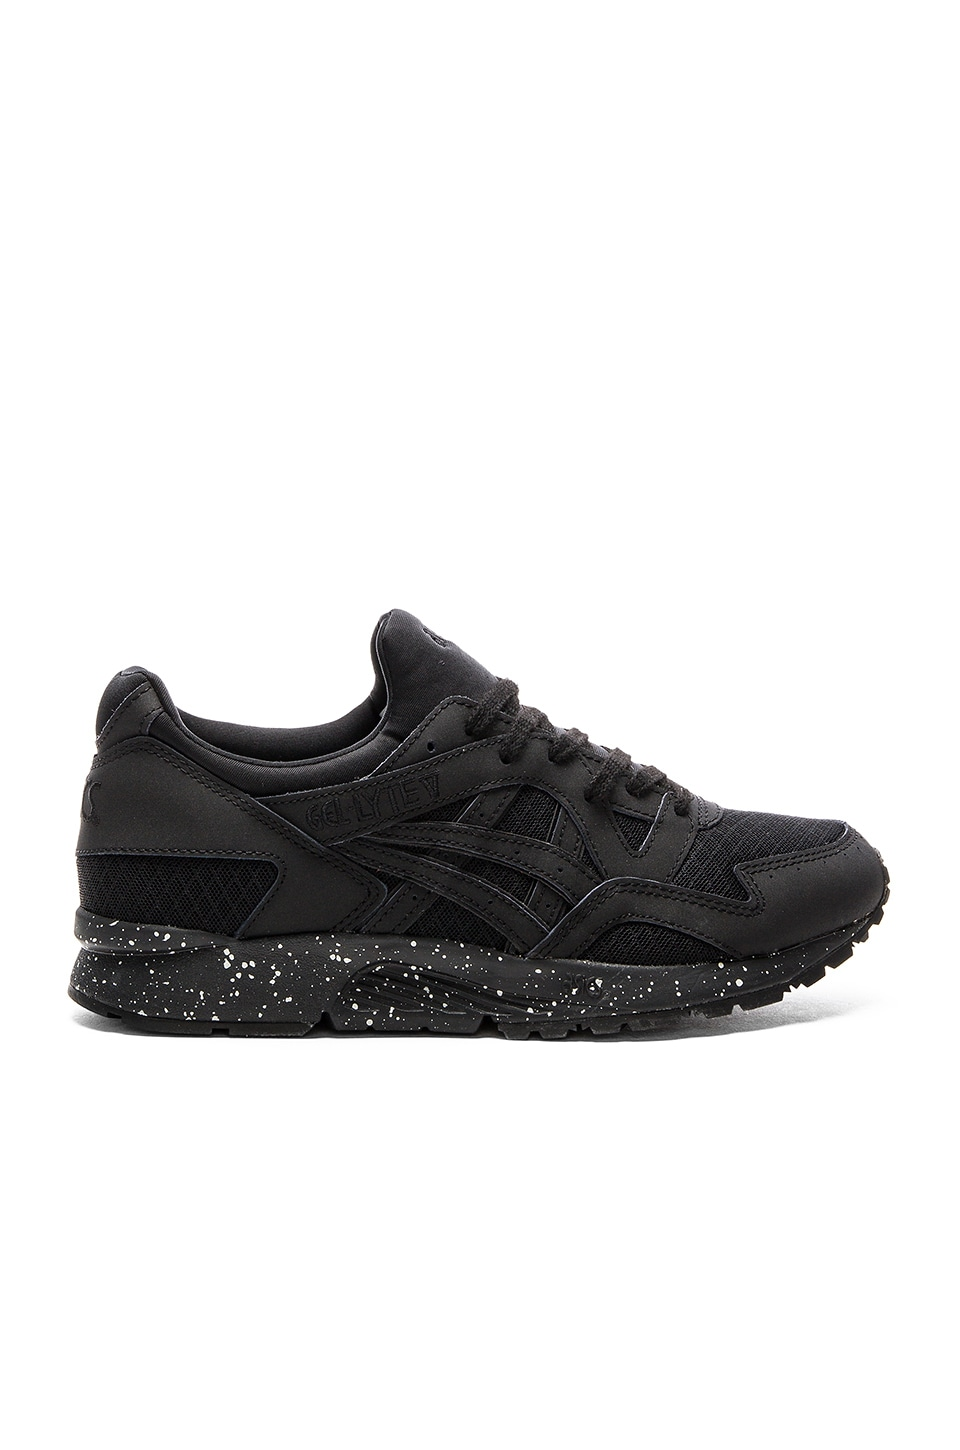 Asics Platinum Gel Lyte V in Black & Black